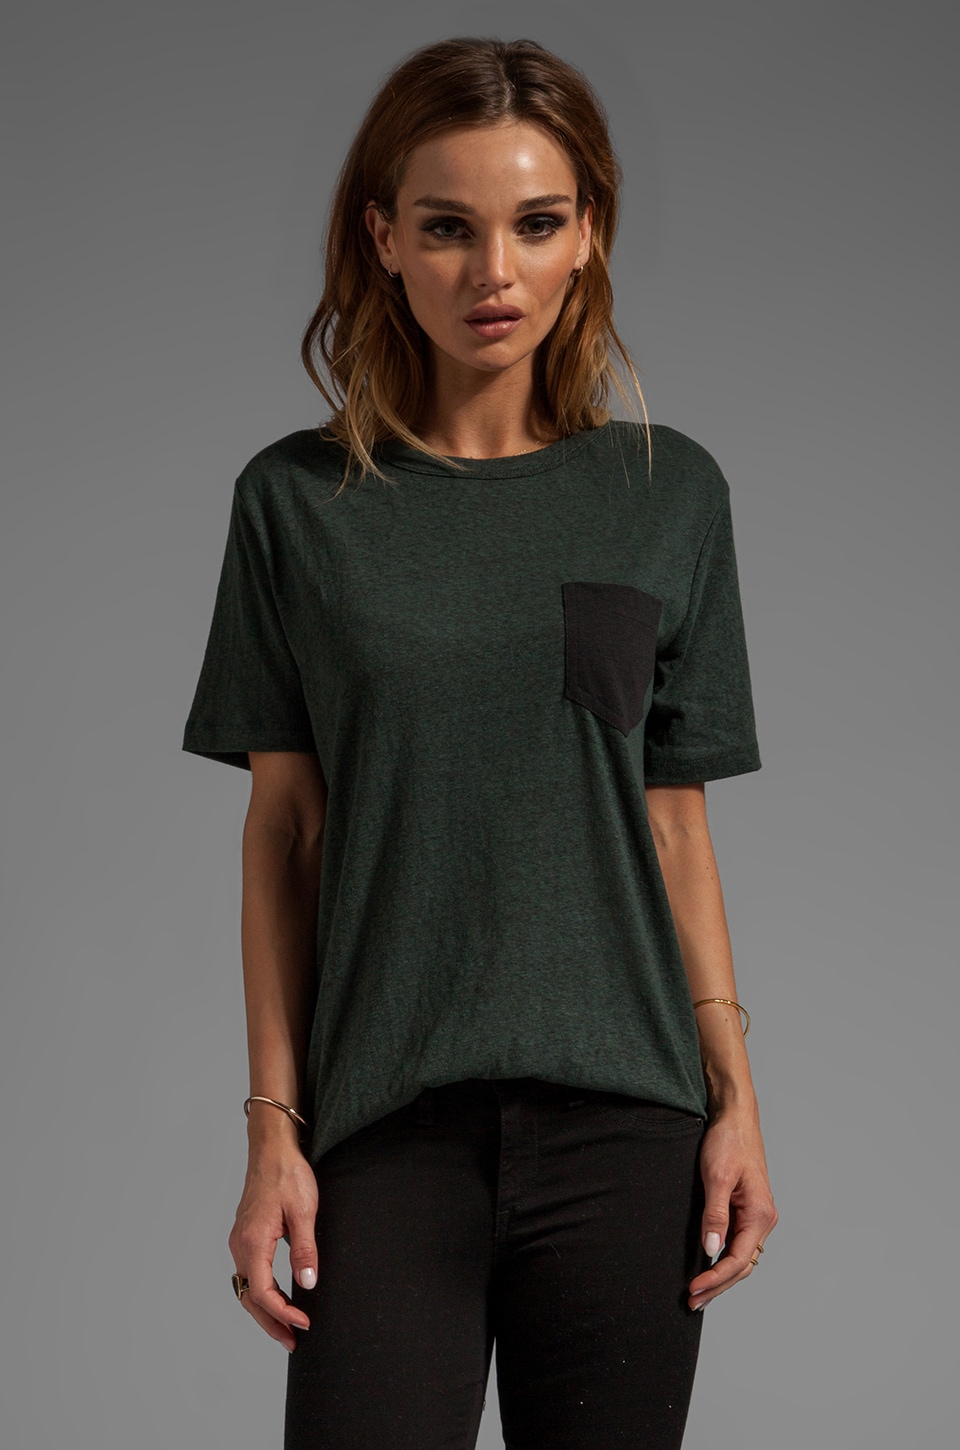 T by Alexander Wang Textured Jersey Tee With Contrast Pocket in Forest